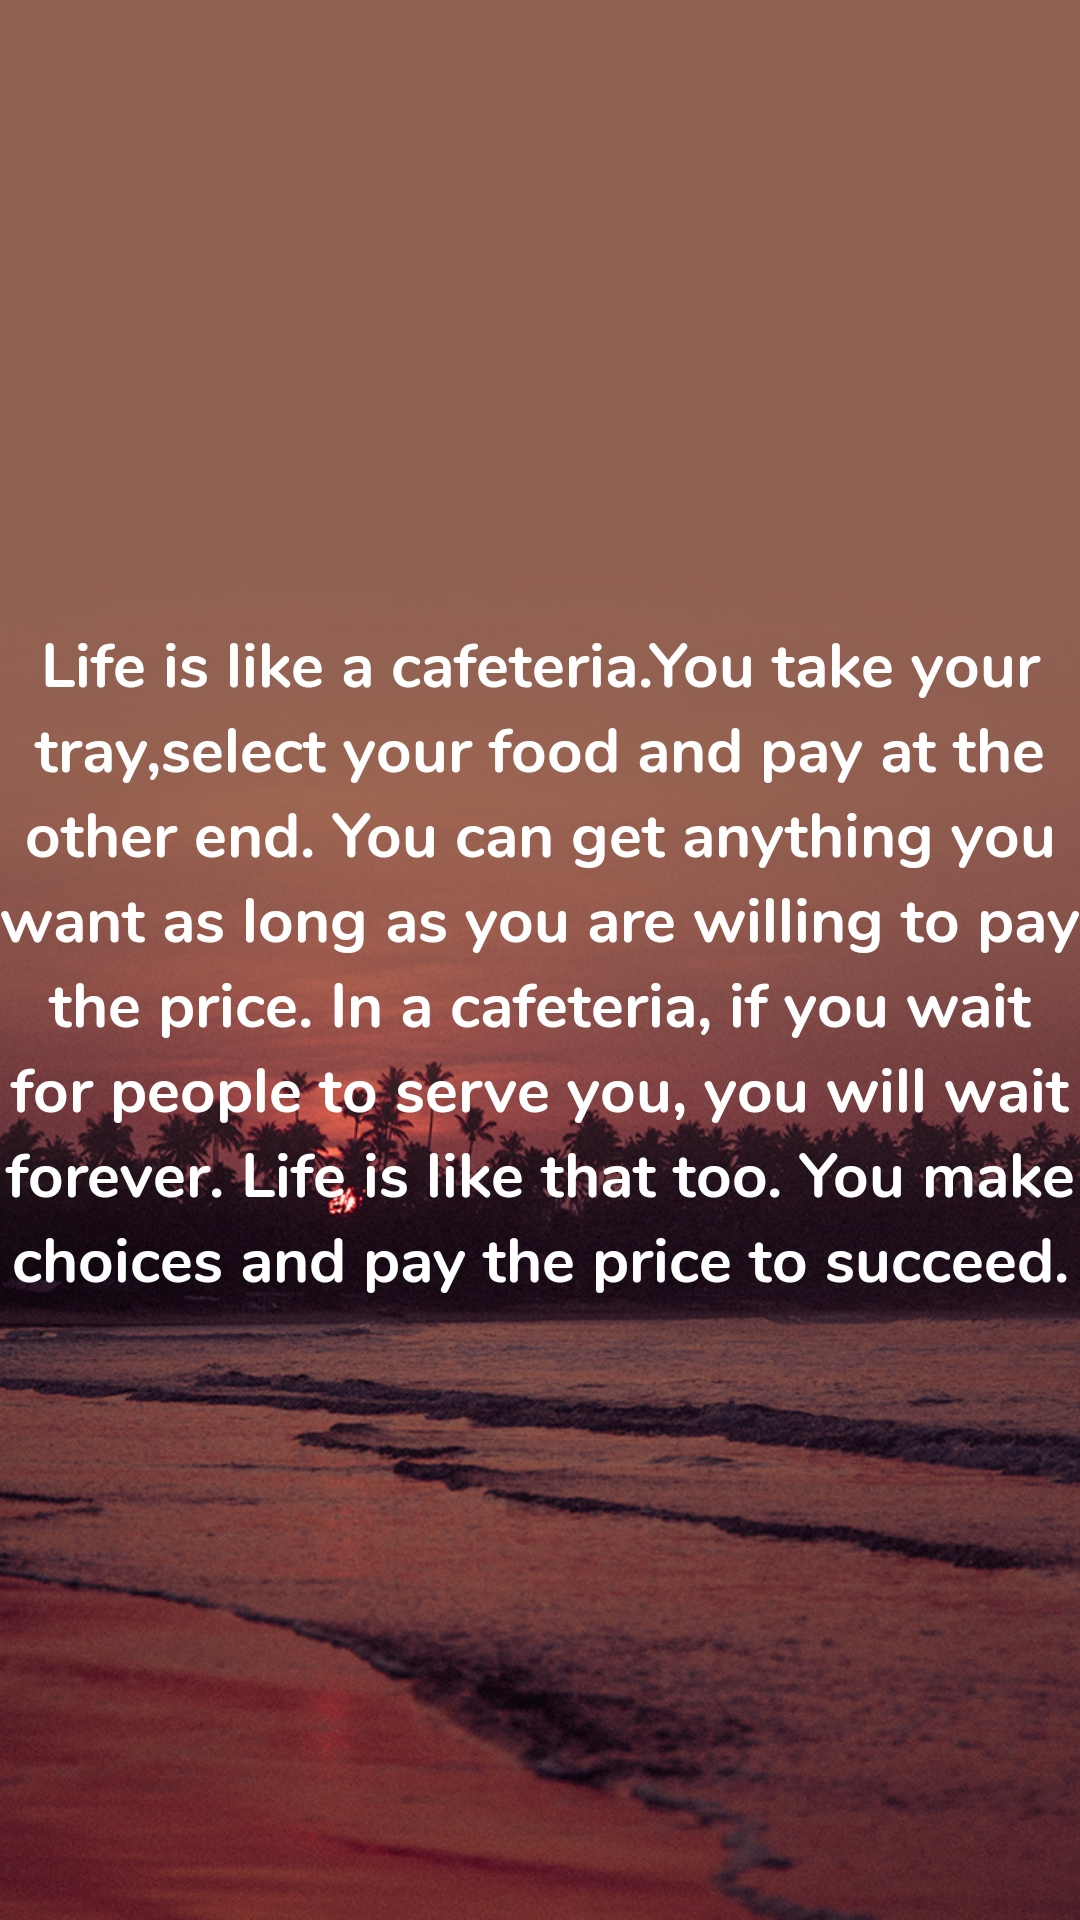 Life is like a cafeteria.You take your tray,select your food and pay at the other end. You can get anything you want as long as you are willing to pay the price. In a cafeteria, if you wait for people to serve you, you will wait forever. Life is like that too. You make choices and pay the price to succeed.